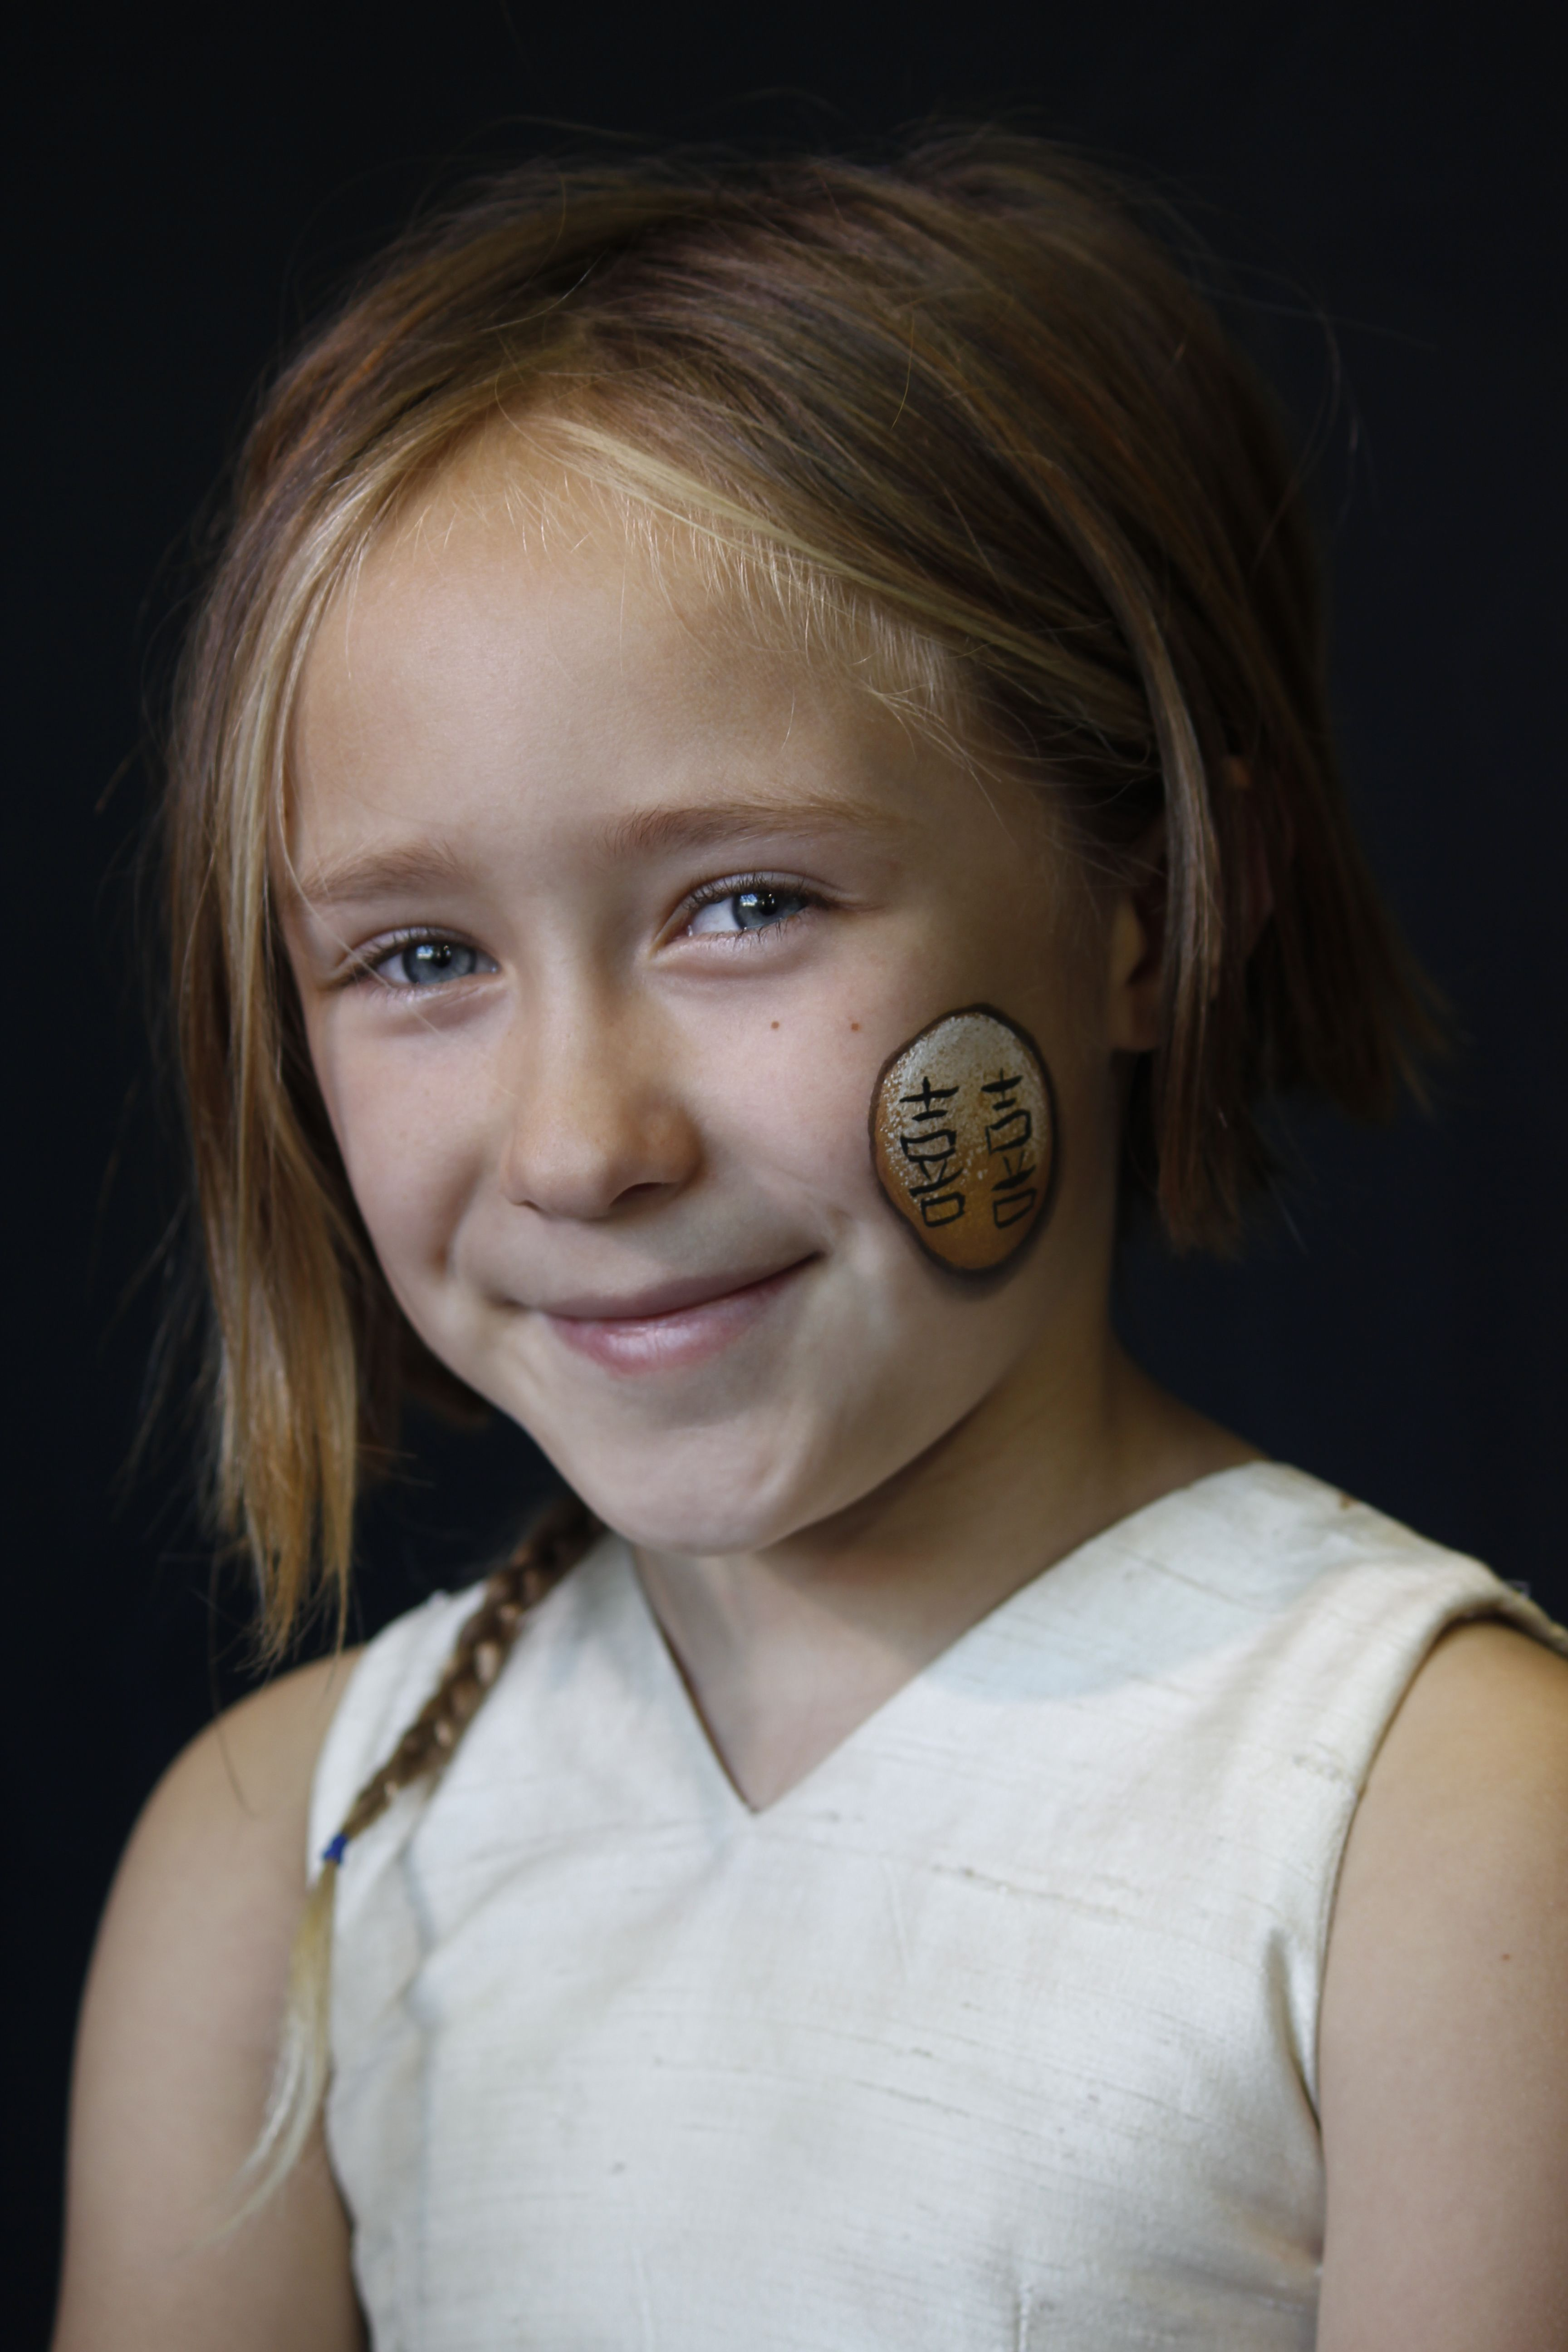 Adorable Little Girl Models A Shuang Xi Design A Chinese Symbol For